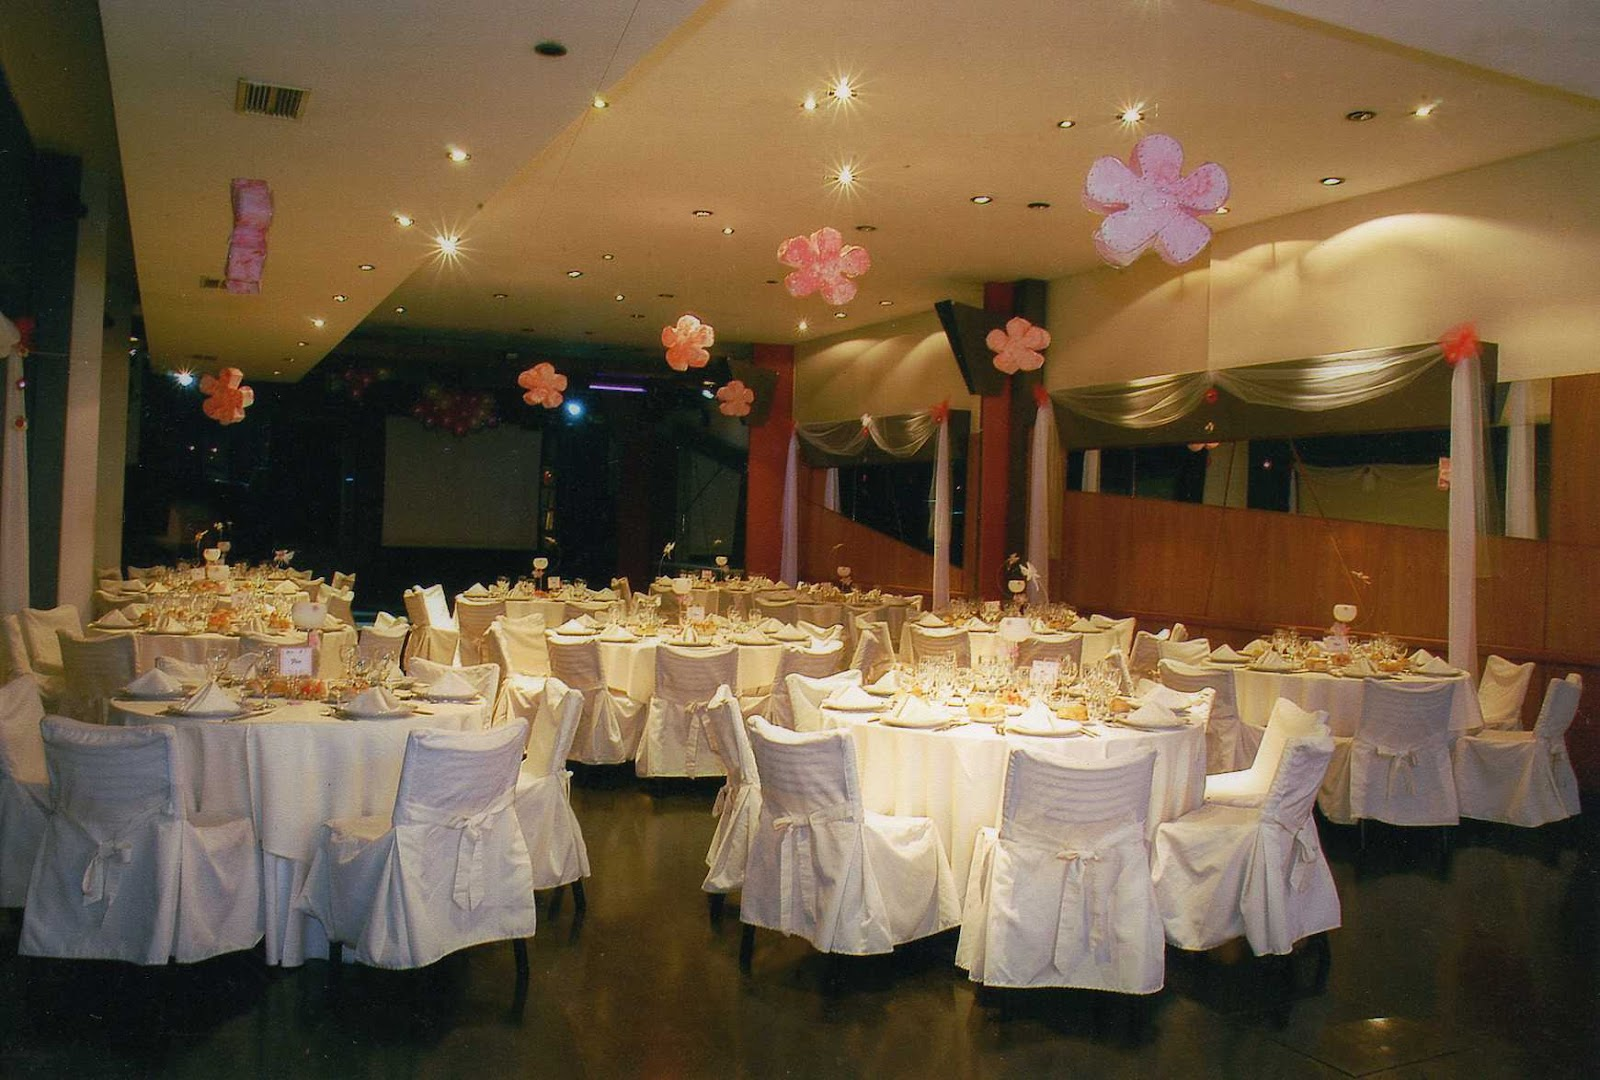 Faar eventos - Decoracion de salon ...